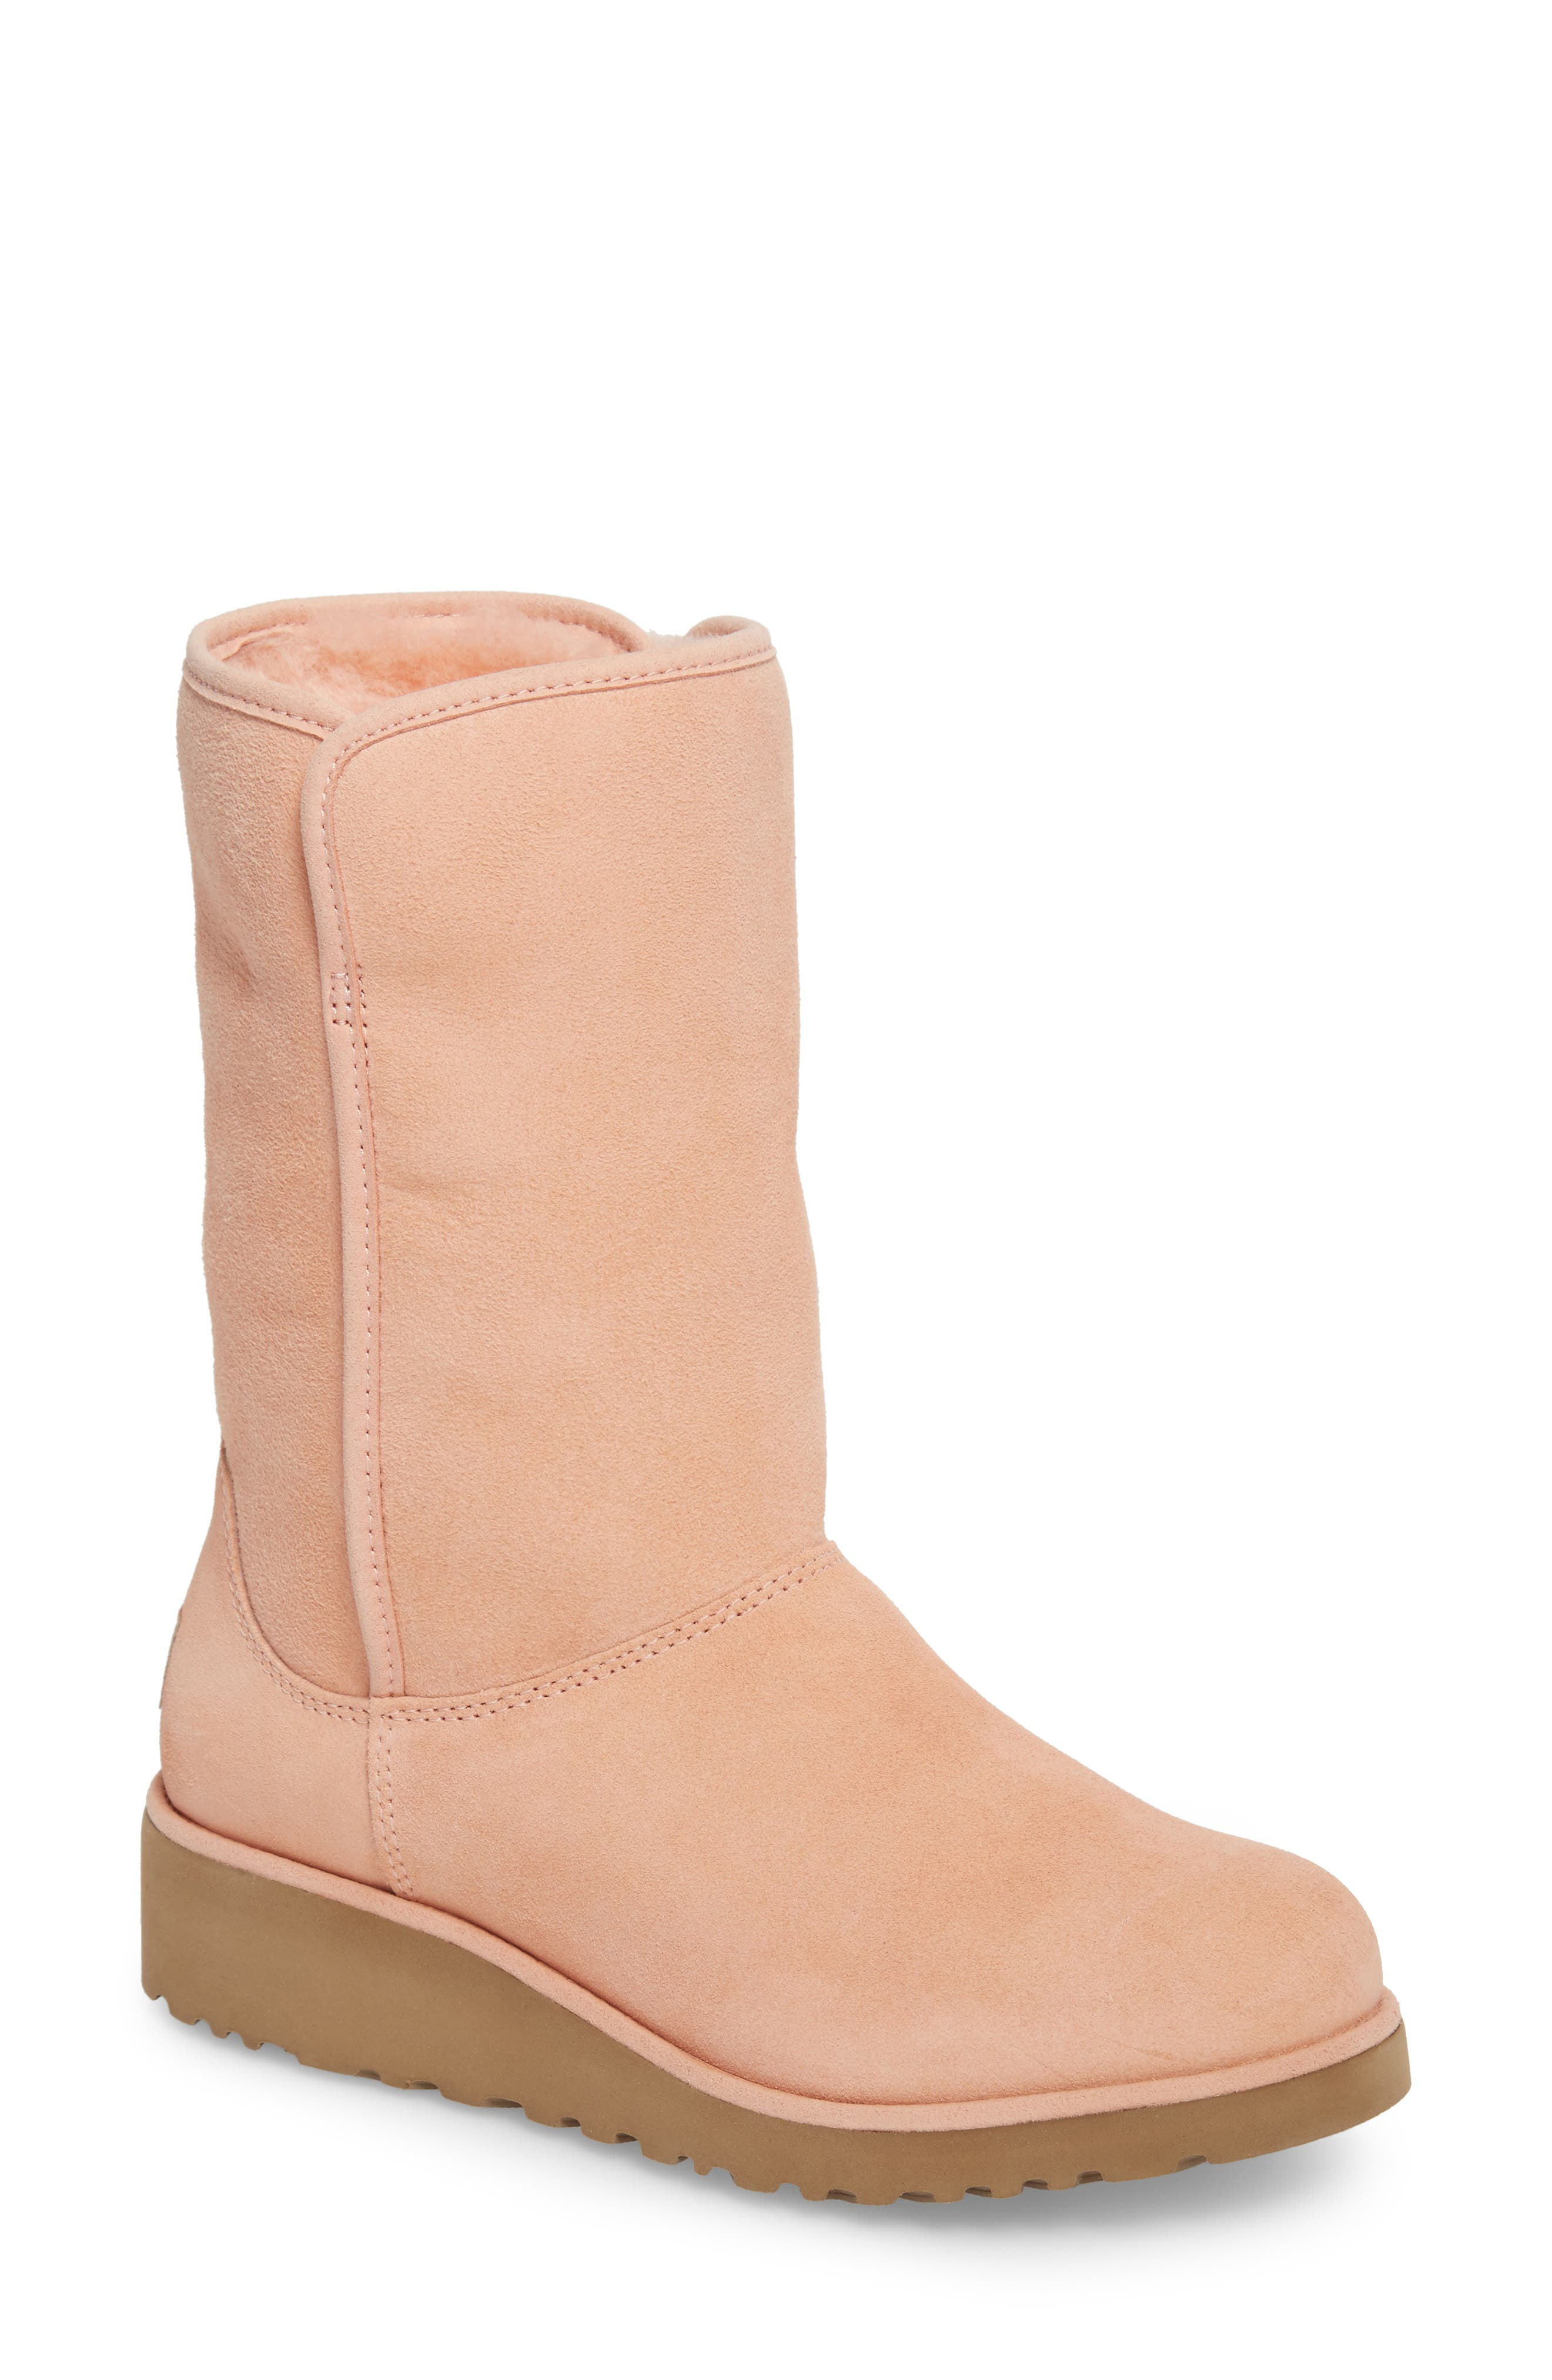 Alternate Image 1 Selected - UGG® Amie - Classic Slim™ Water Resistant Short Boot (Women)